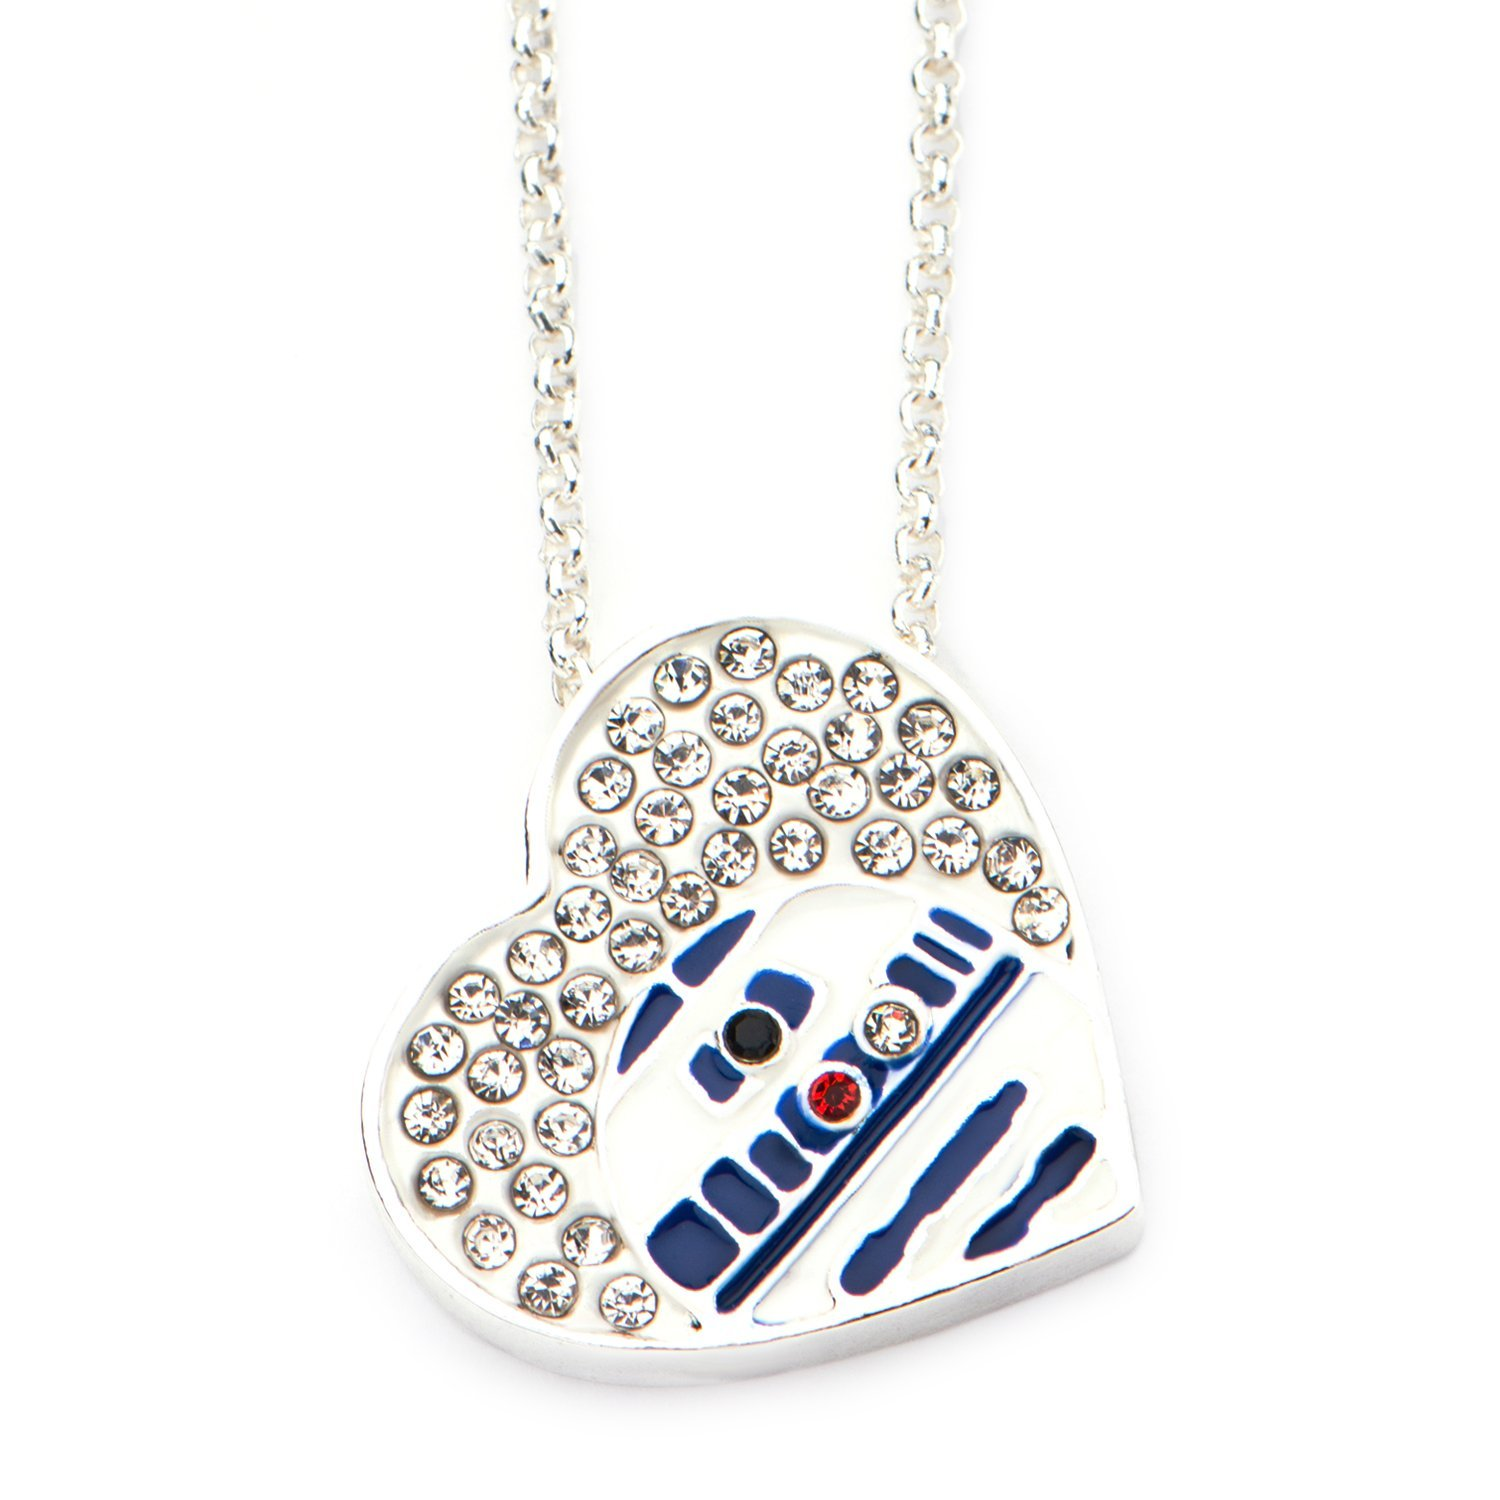 Star Wars R2-D2 heart shaped crystal necklace at Amazon